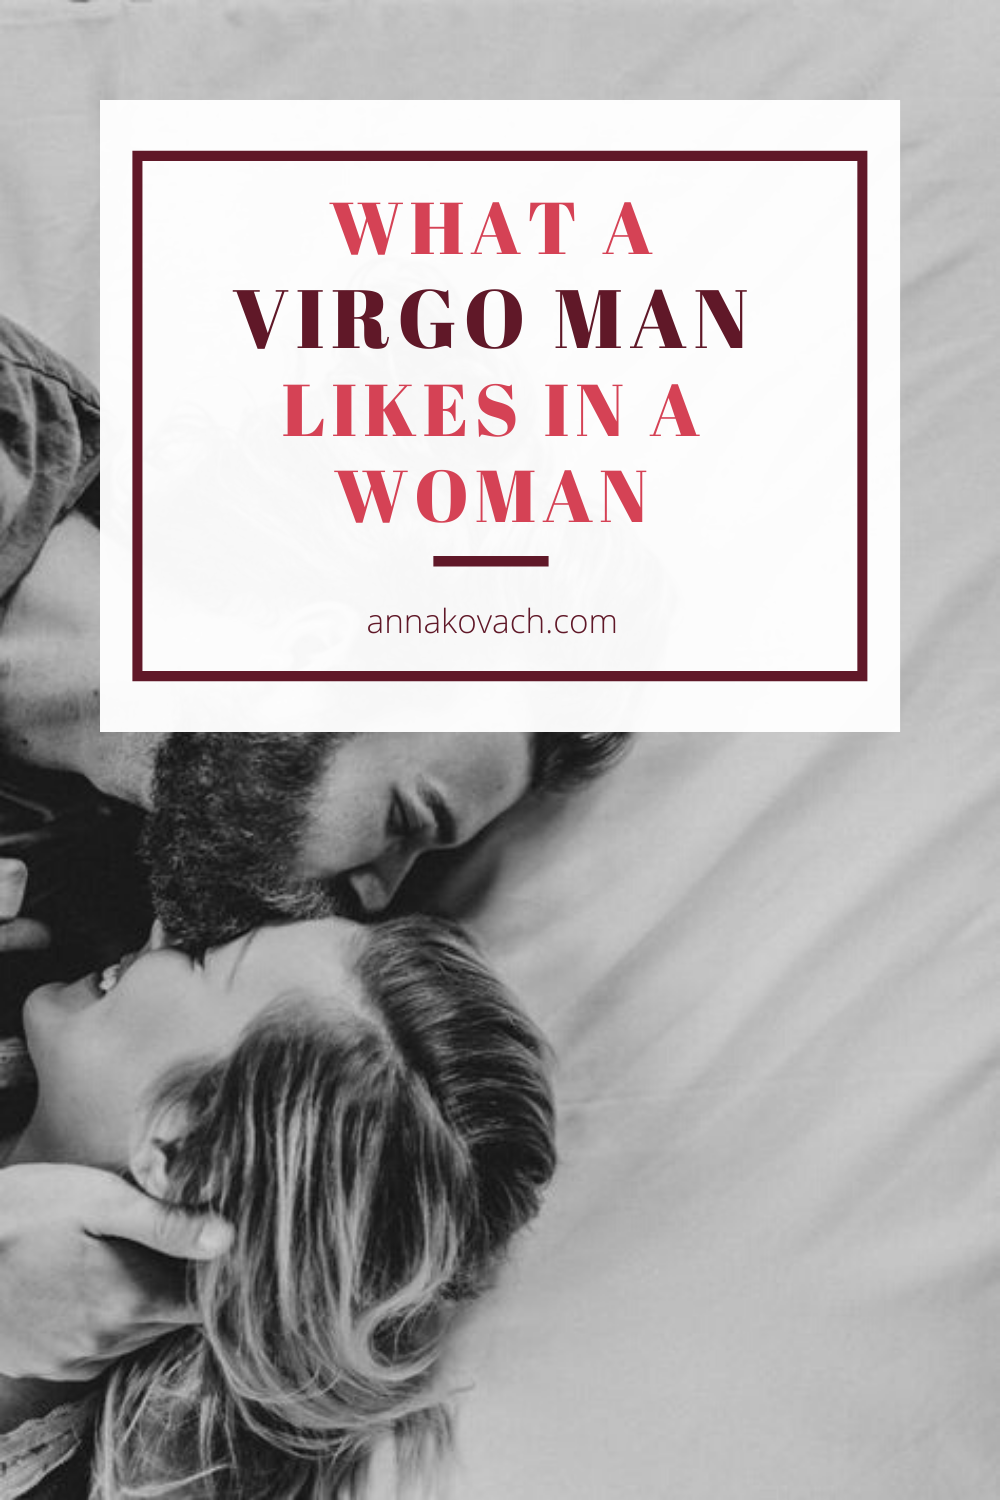 What a Virgo Man Likes In a Woman - Its Not What You